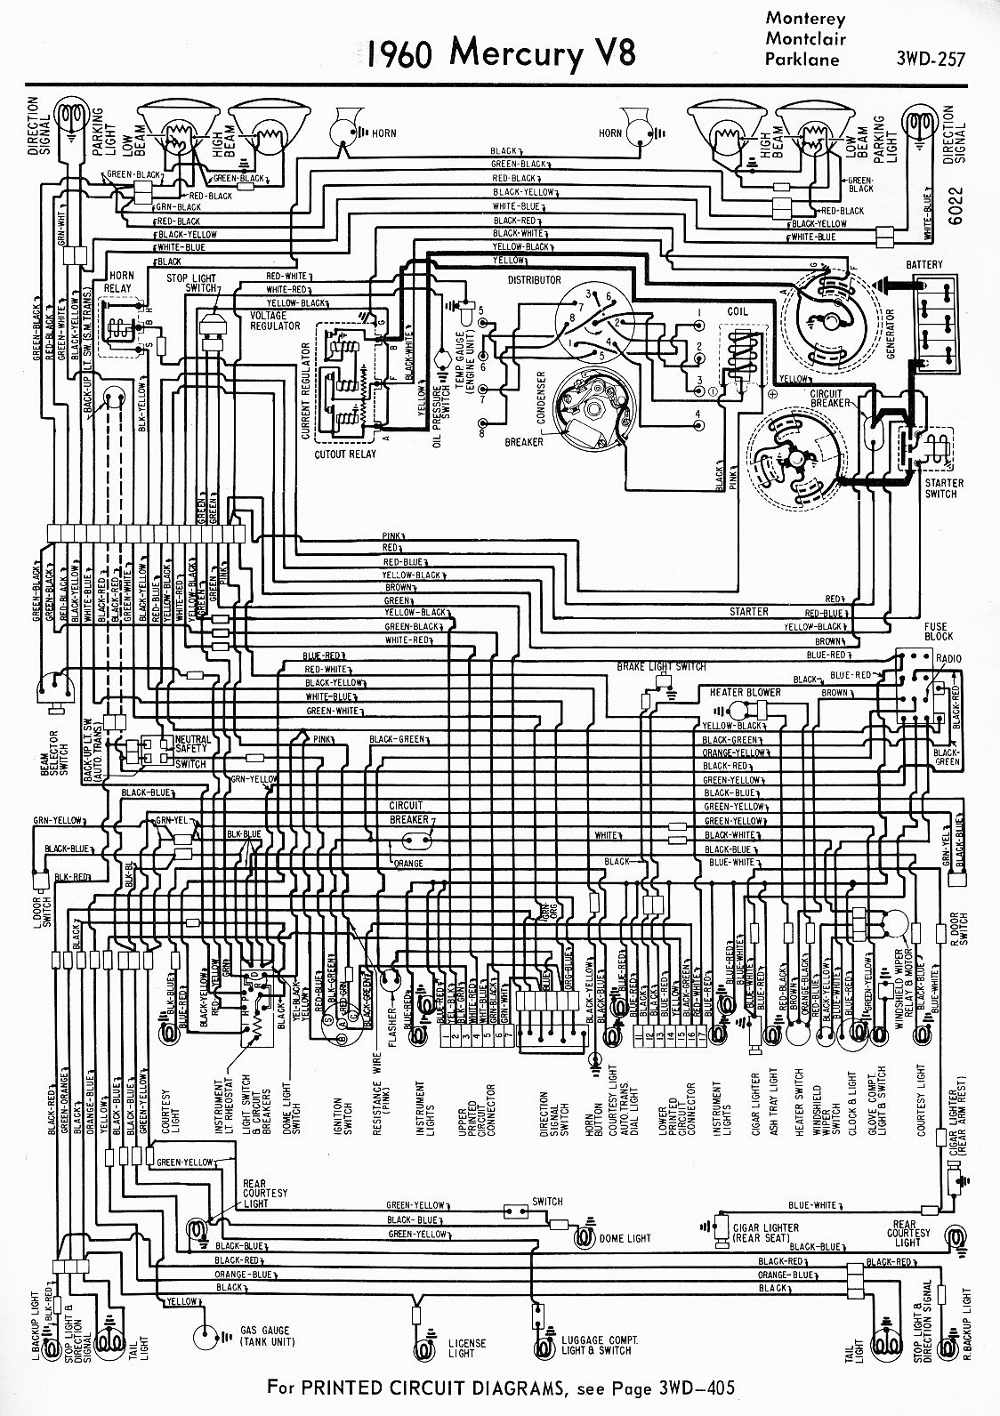 Mercury Car Manuals Wiring Diagrams Pdf Fault Codes 1963 Monterey Diagram Download